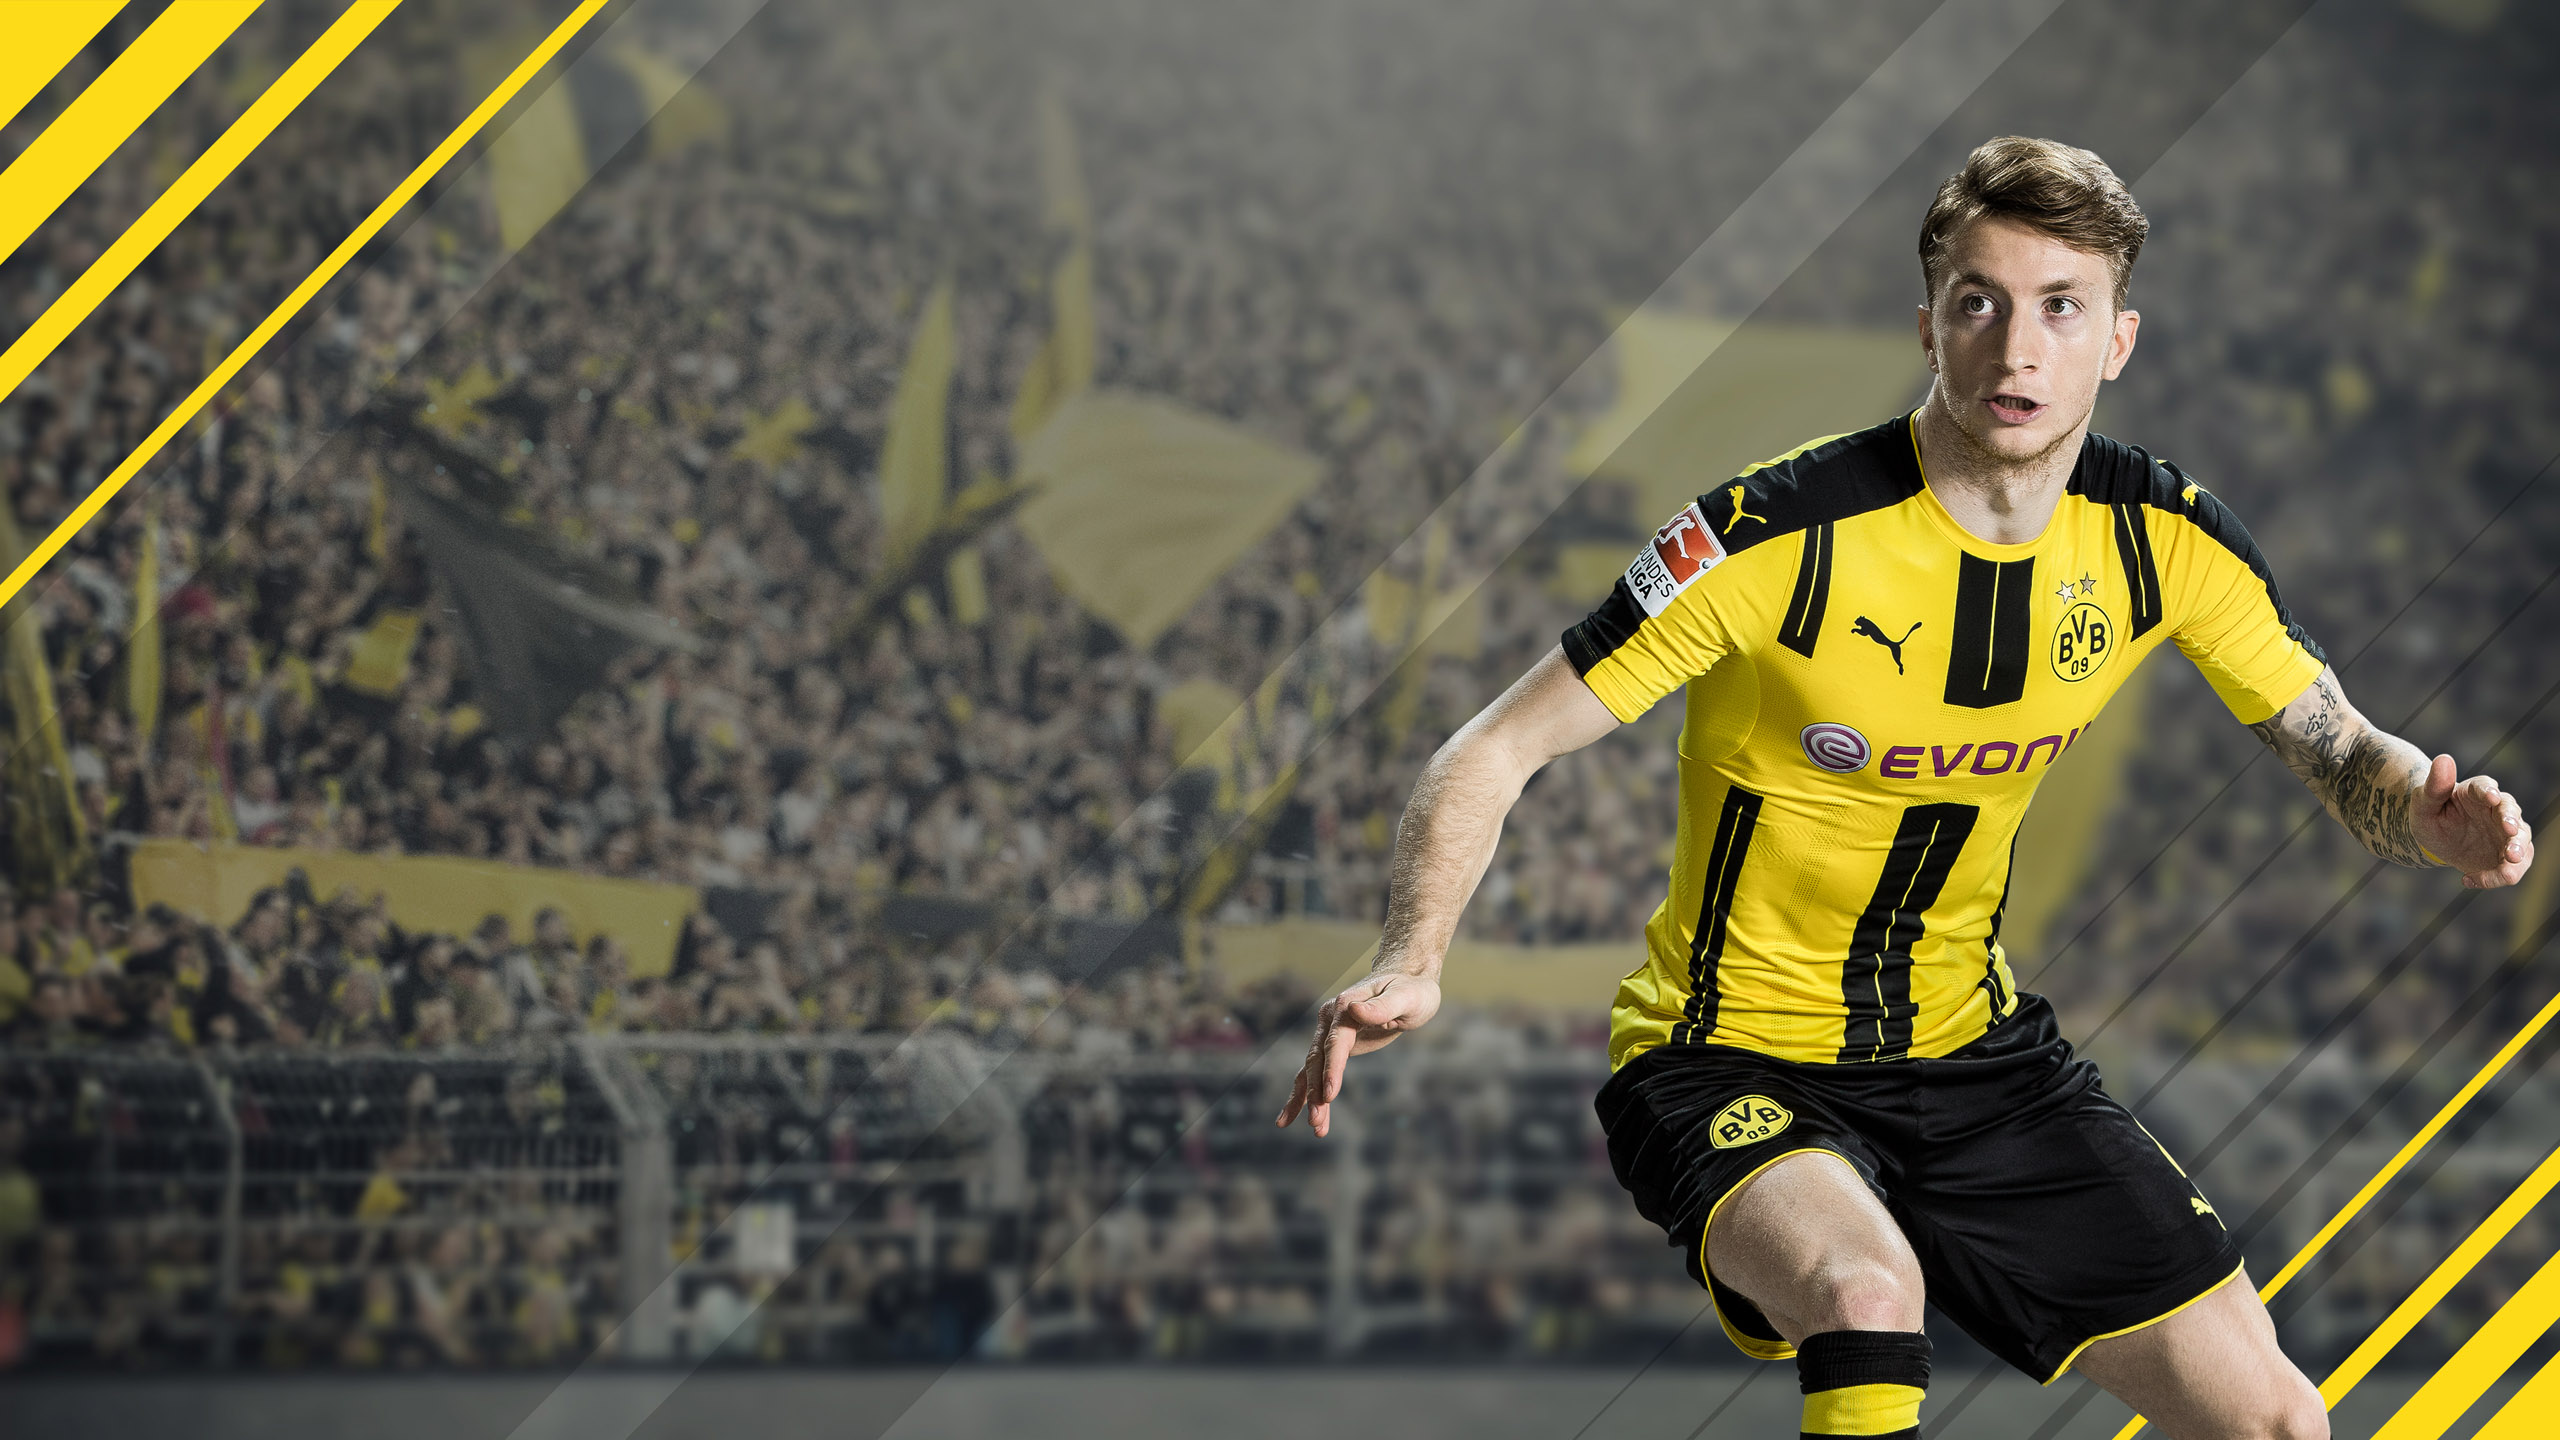 fifa 17 wallpaper related keywords suggestions fifa 17